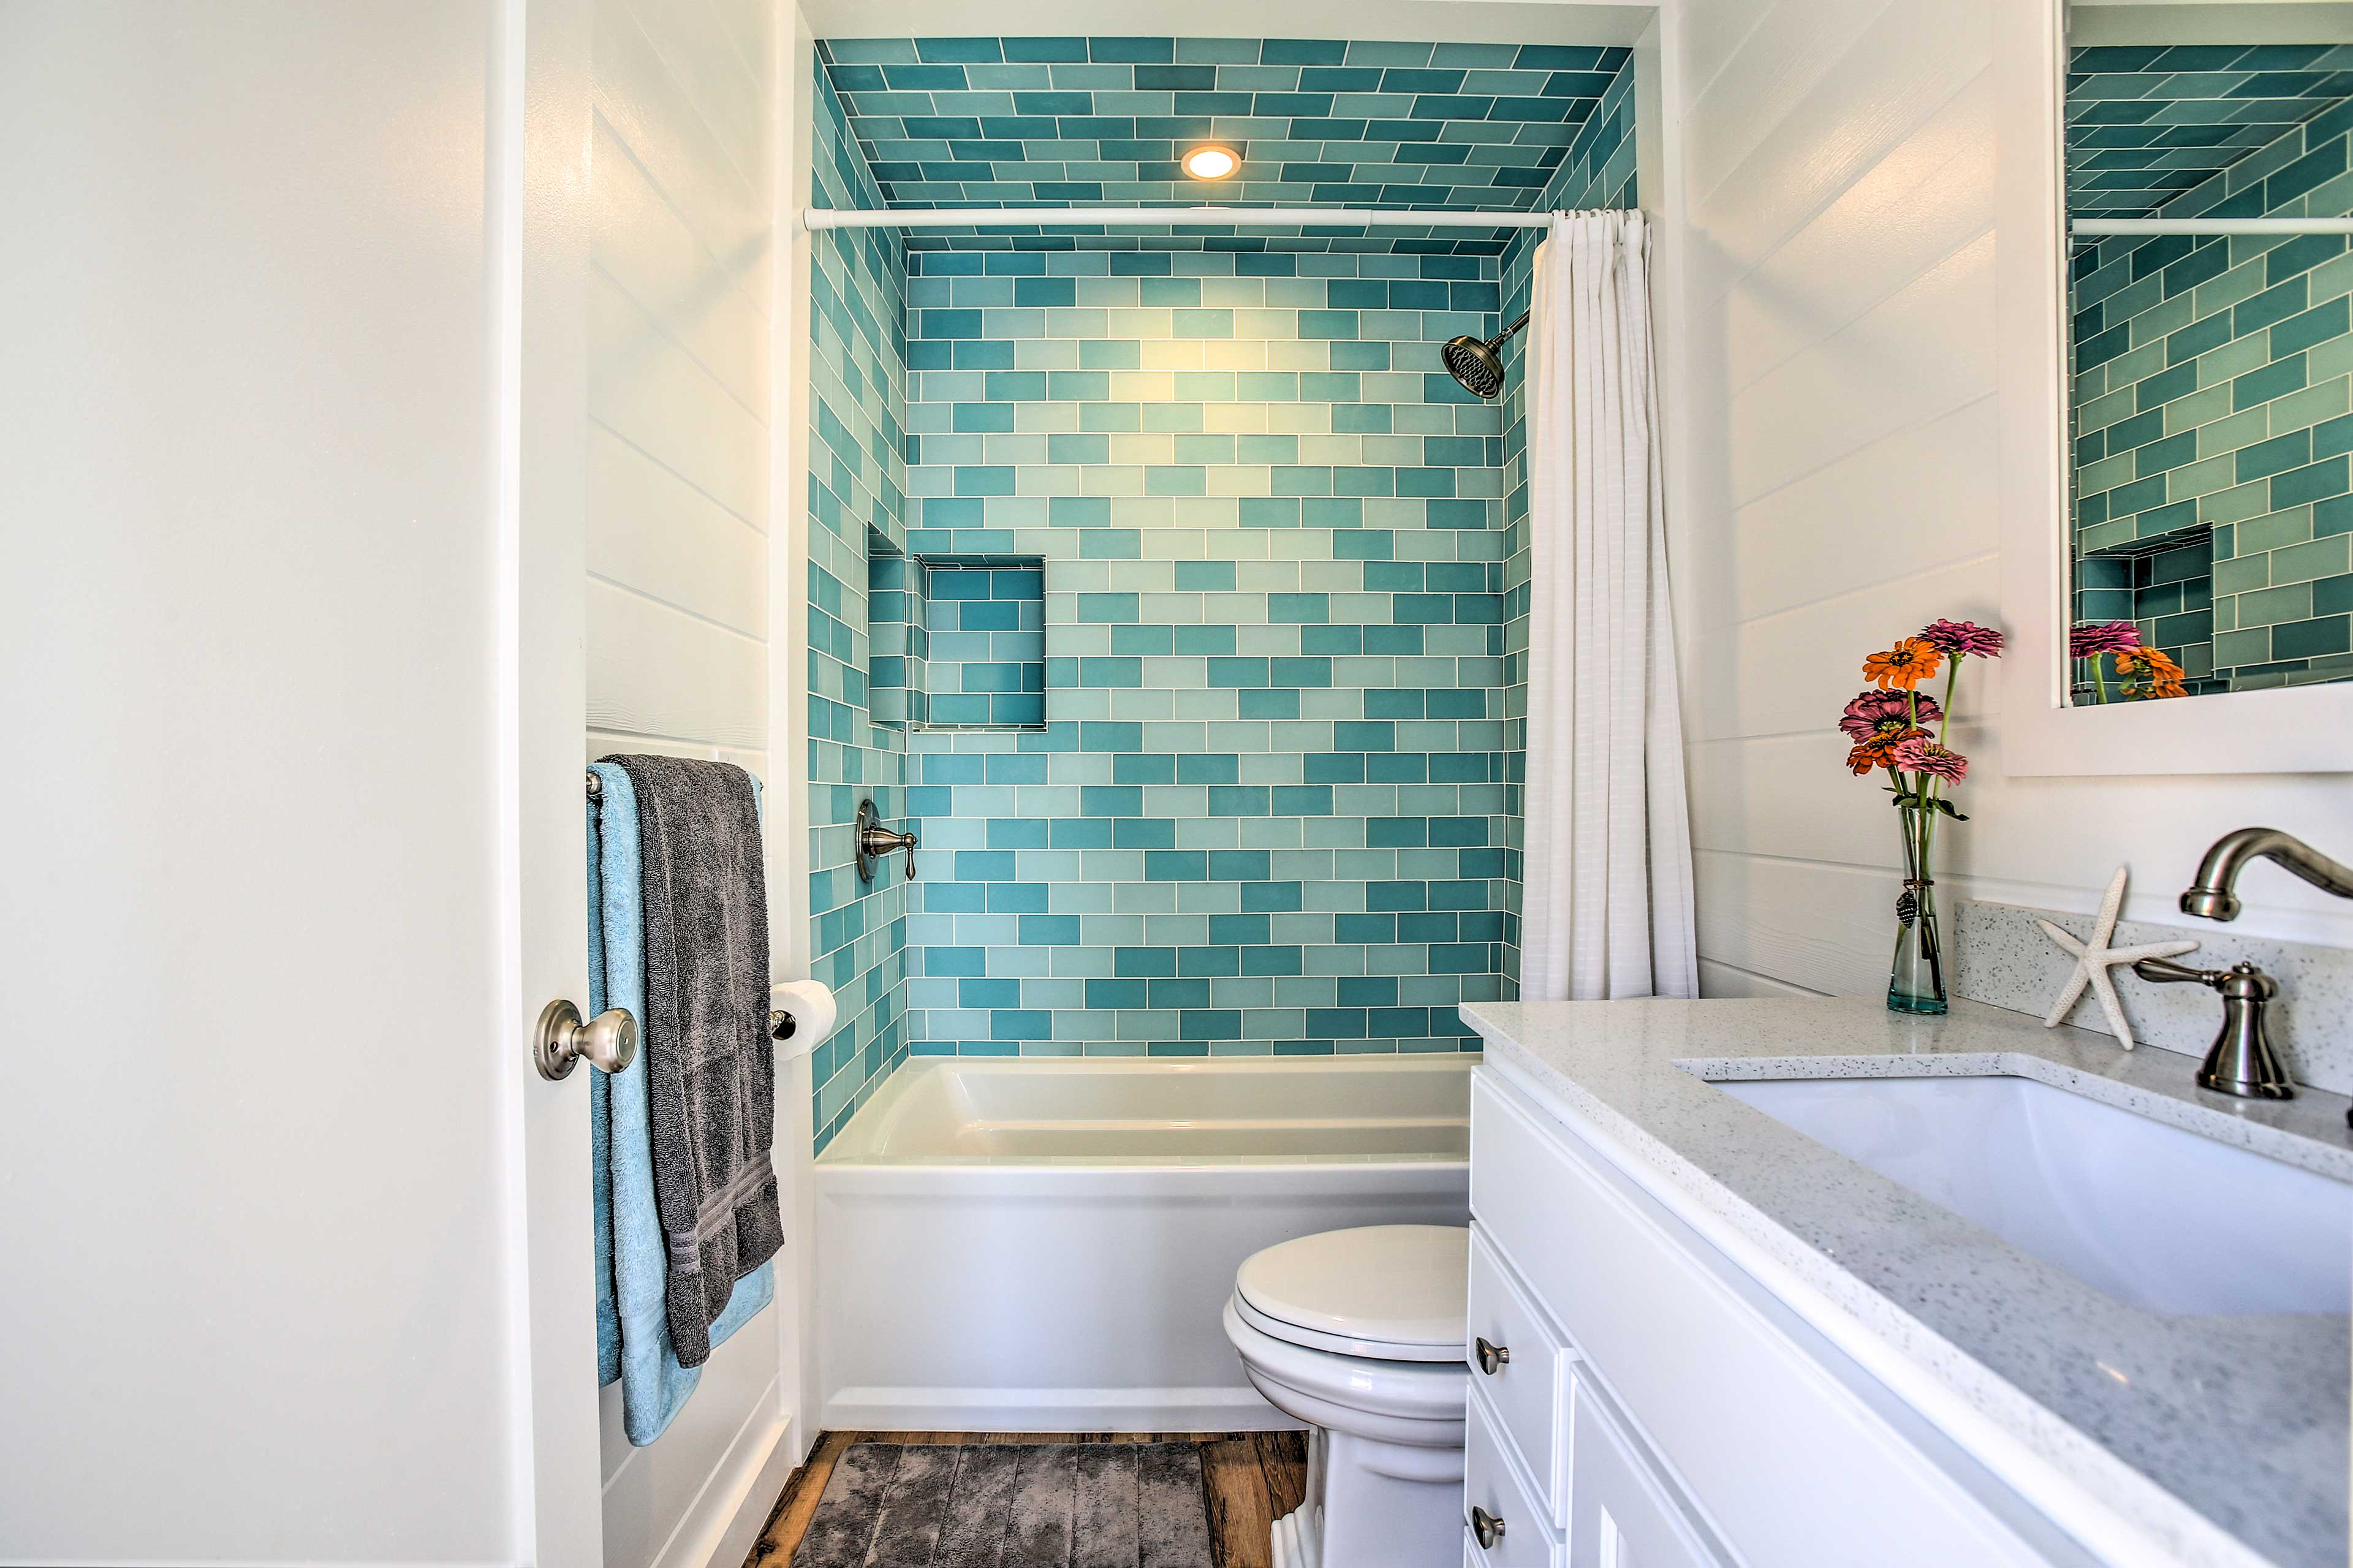 Get ready for you fun day in the blue-tile bathroom!